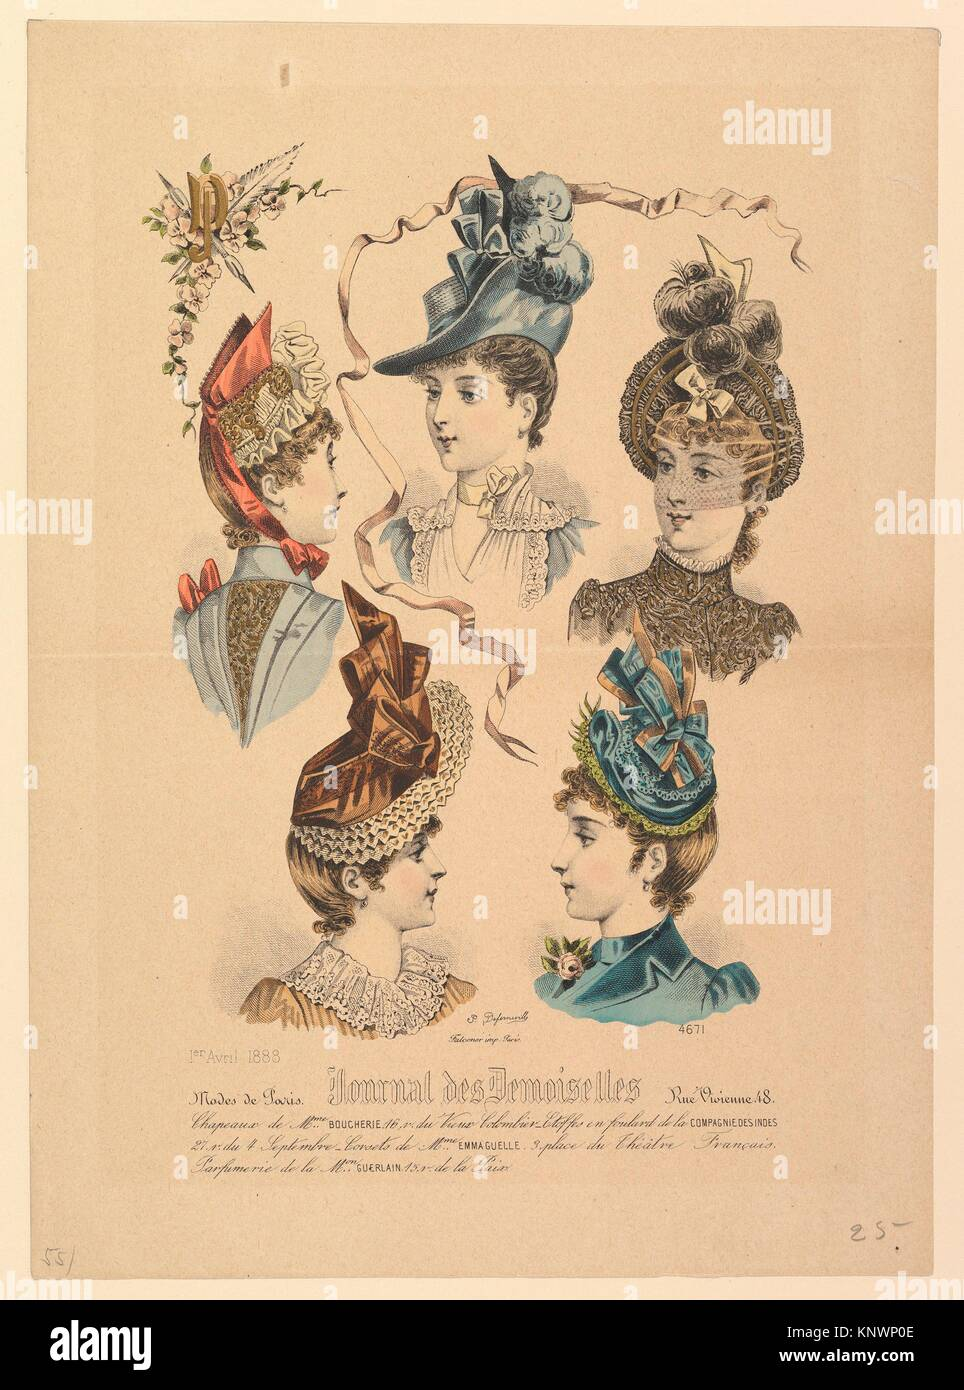 Ladies' Hats, No. 4671, from Journal des Demoiselles. Artist: Paul Deferneville (French, active 19th century); - Stock Image